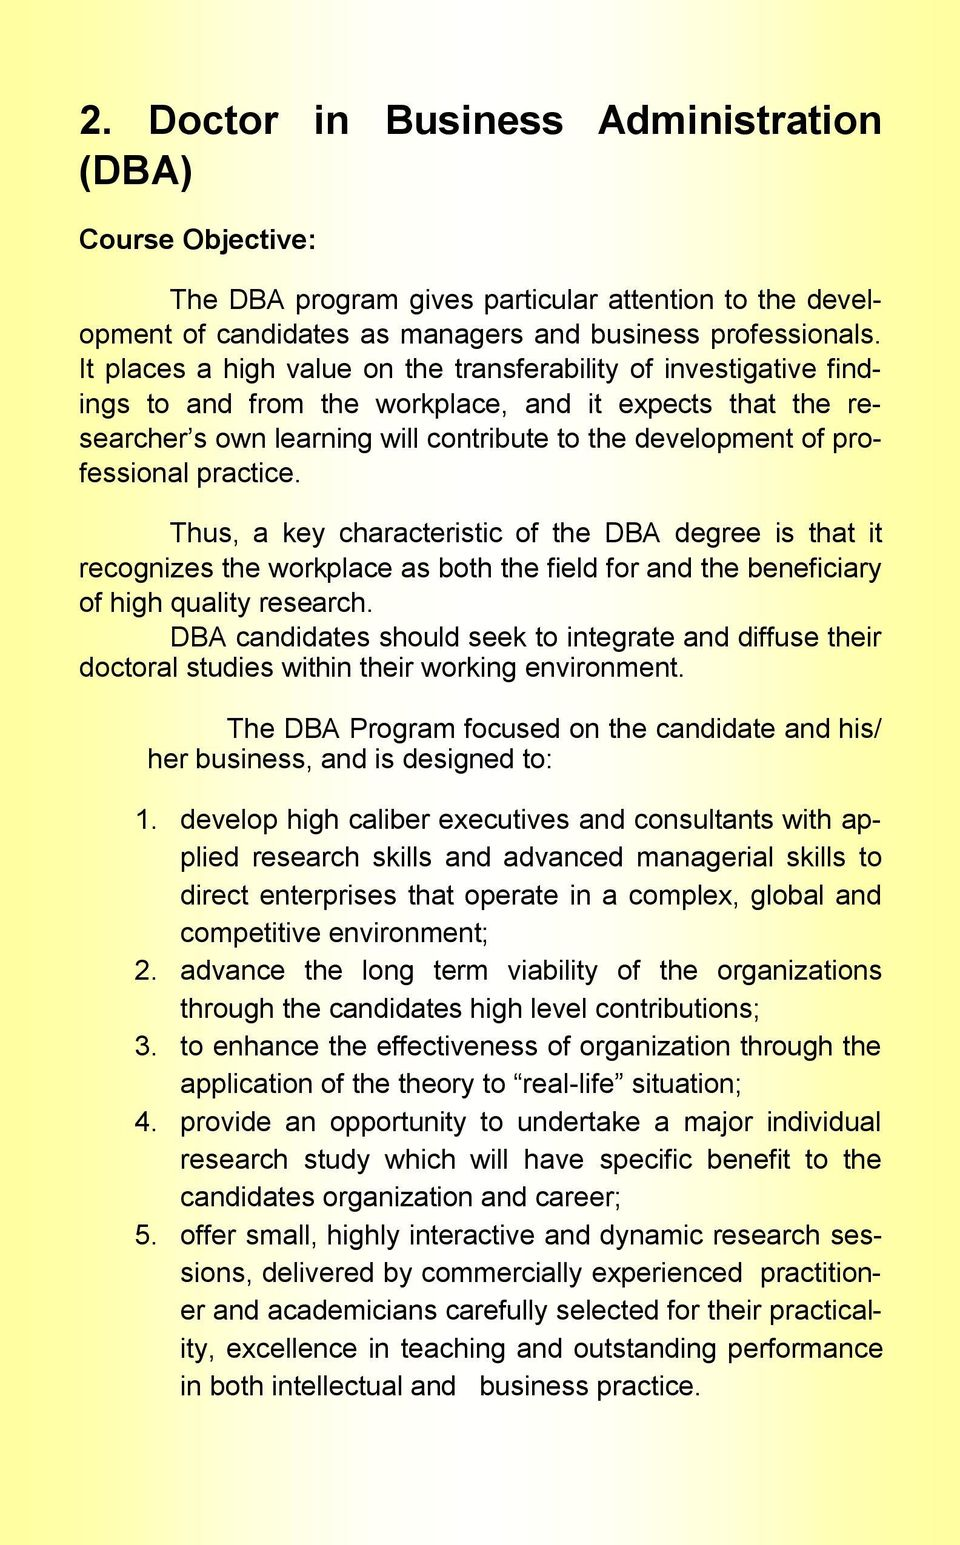 practice. Thus, a key characteristic of the DBA degree is that it recognizes the workplace as both the field for and the beneficiary of high quality research.